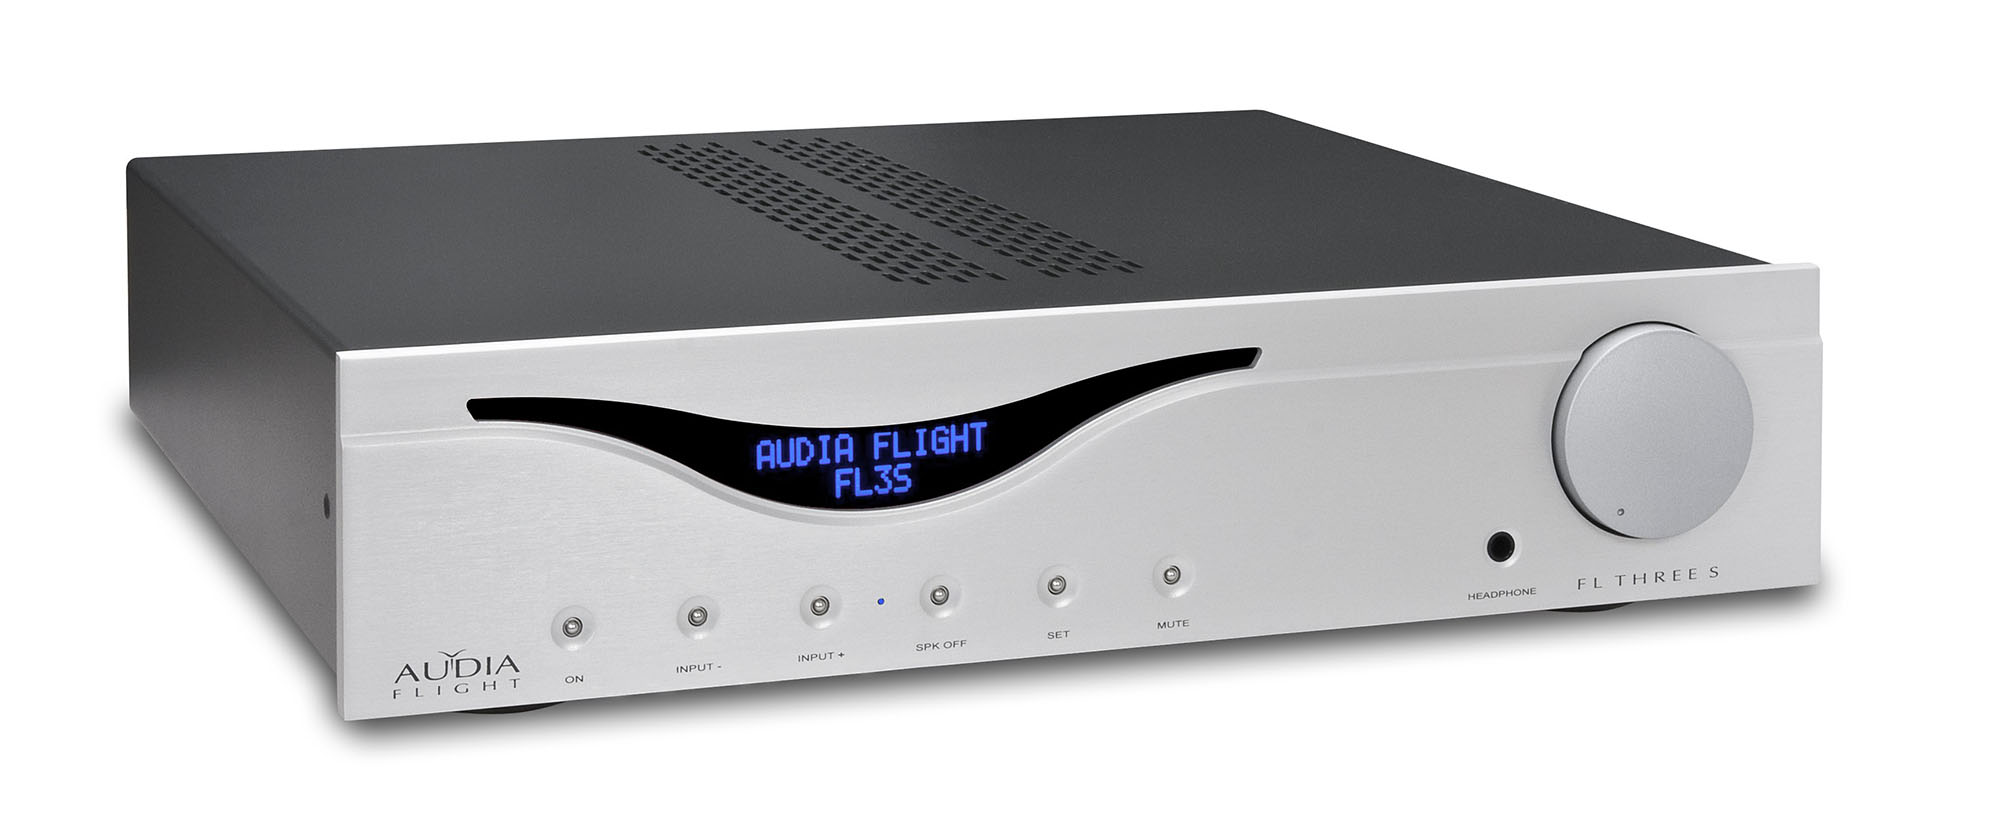 Интегральные стереоусилители Audia Flight Three S silver audia flight three s usb dac silver